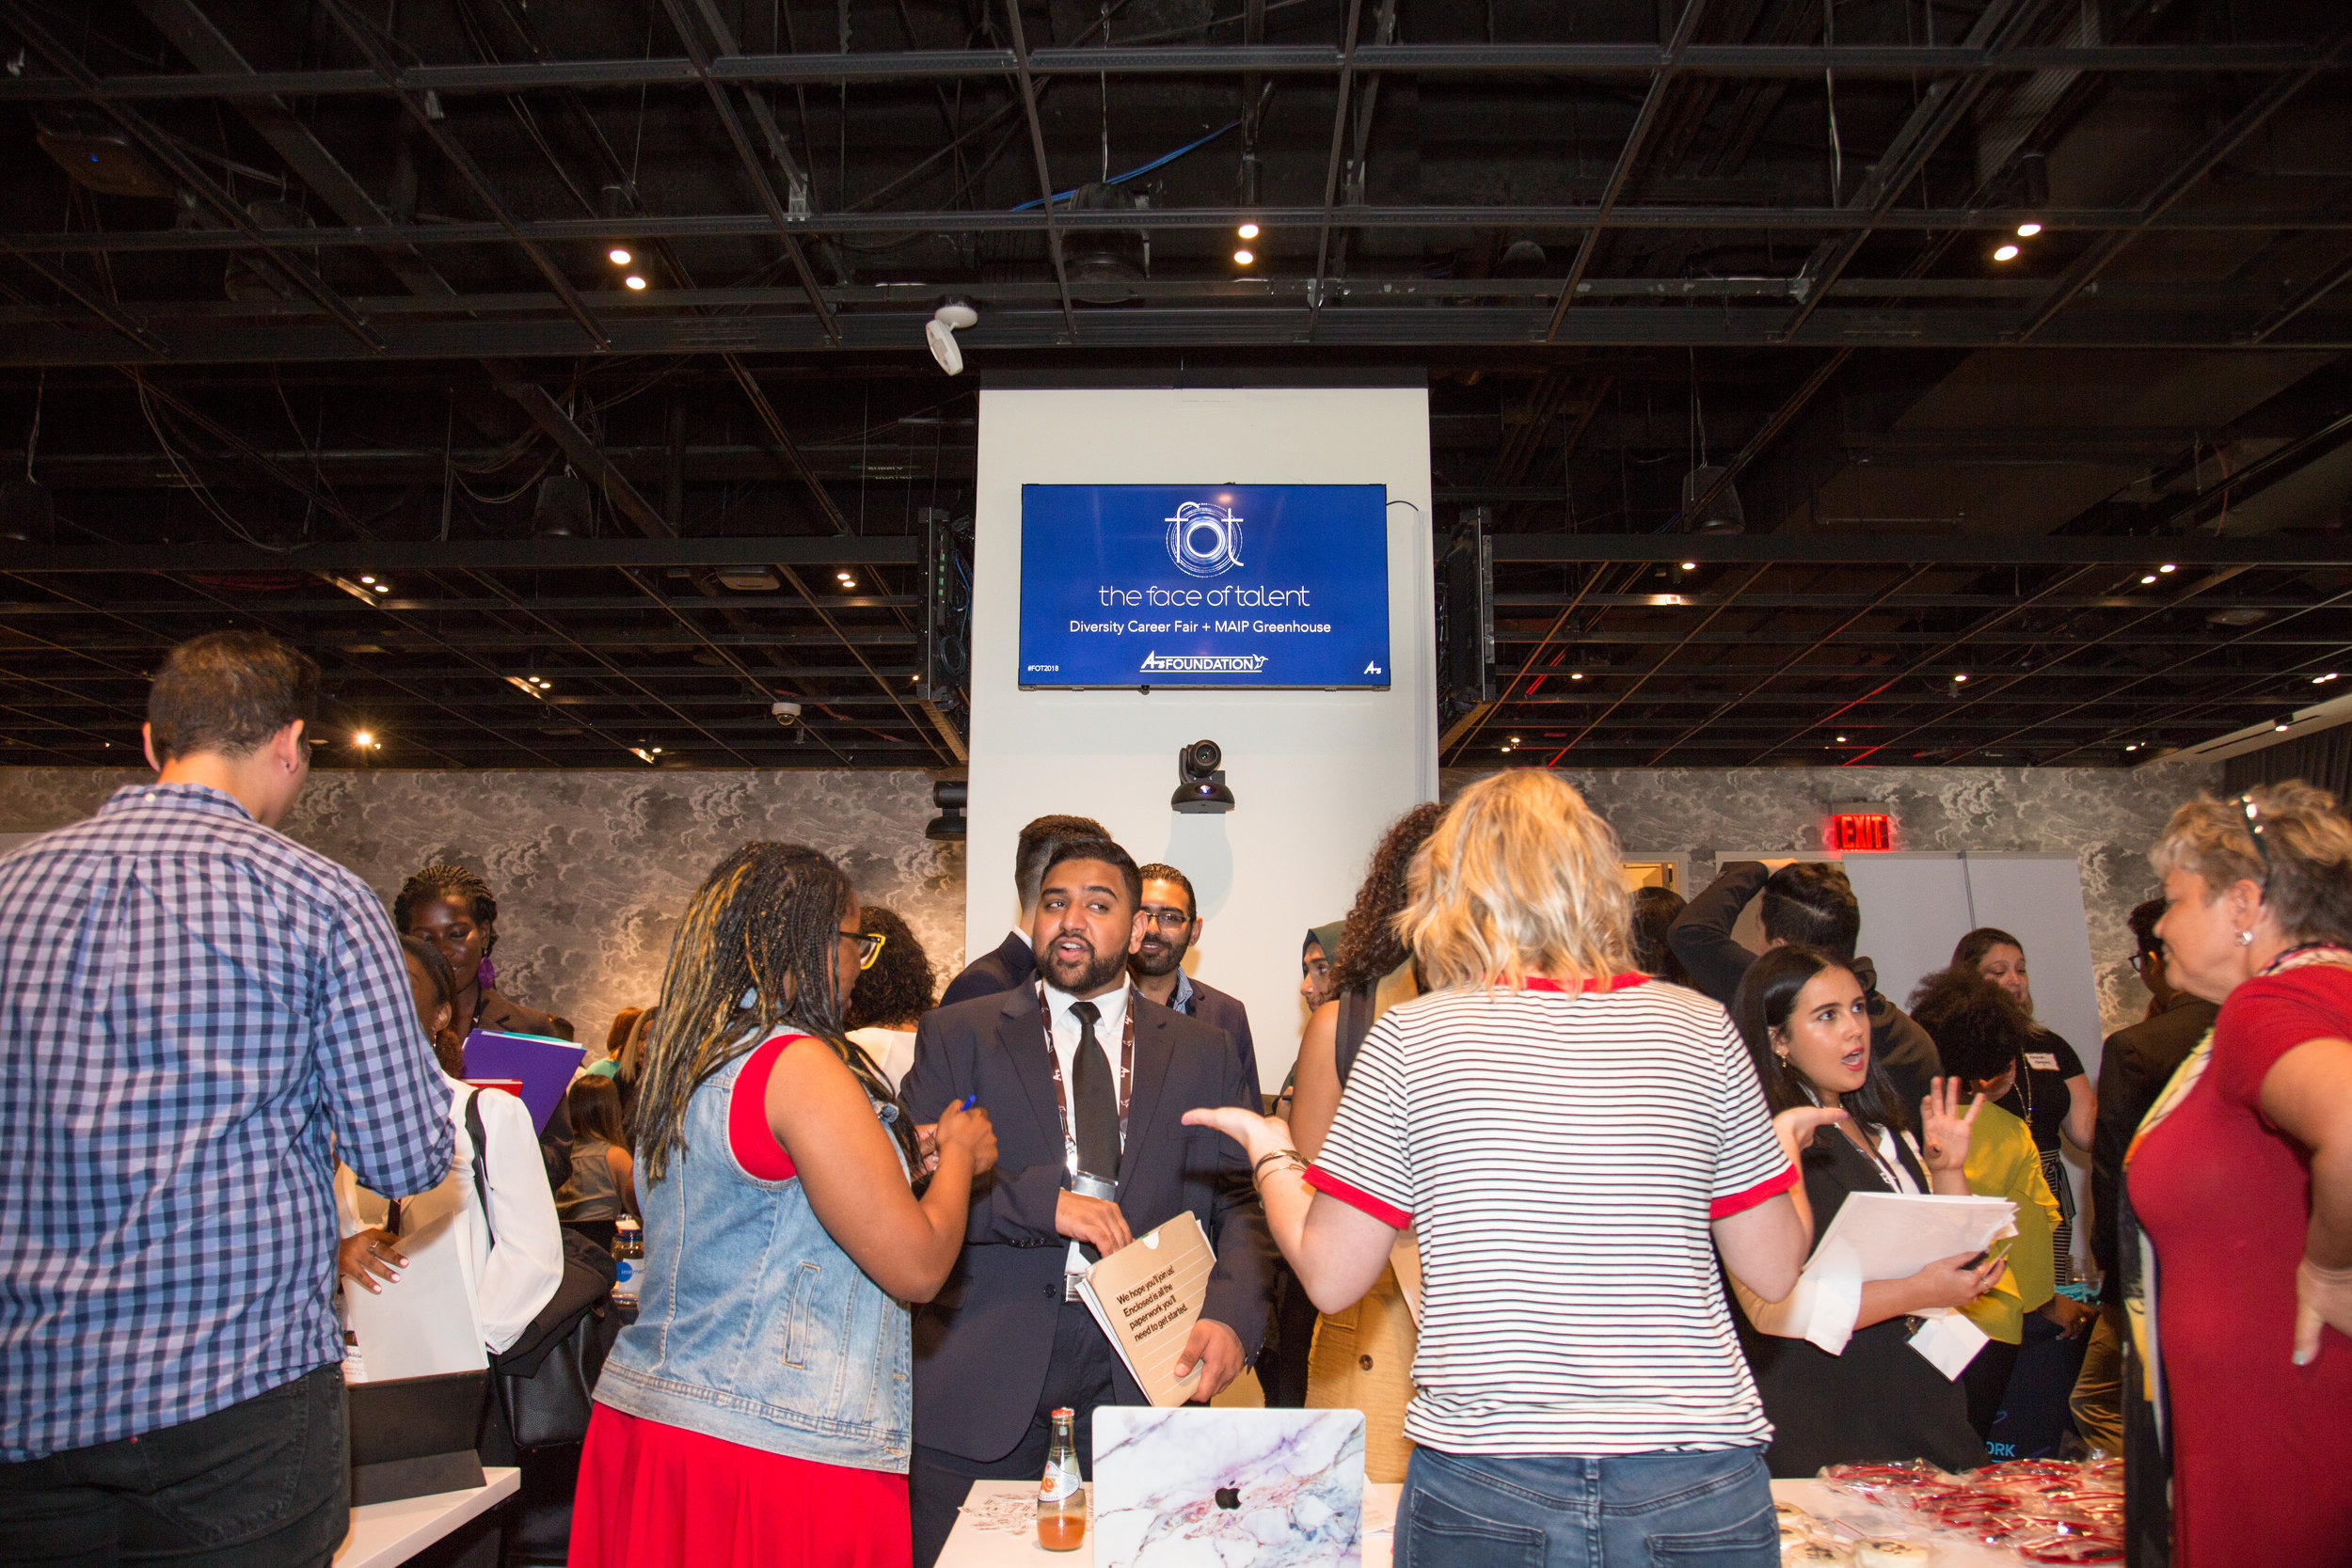 4As_MAIP_FOT_Career_Fair_2018_Margarita_Corporan-6.jpg